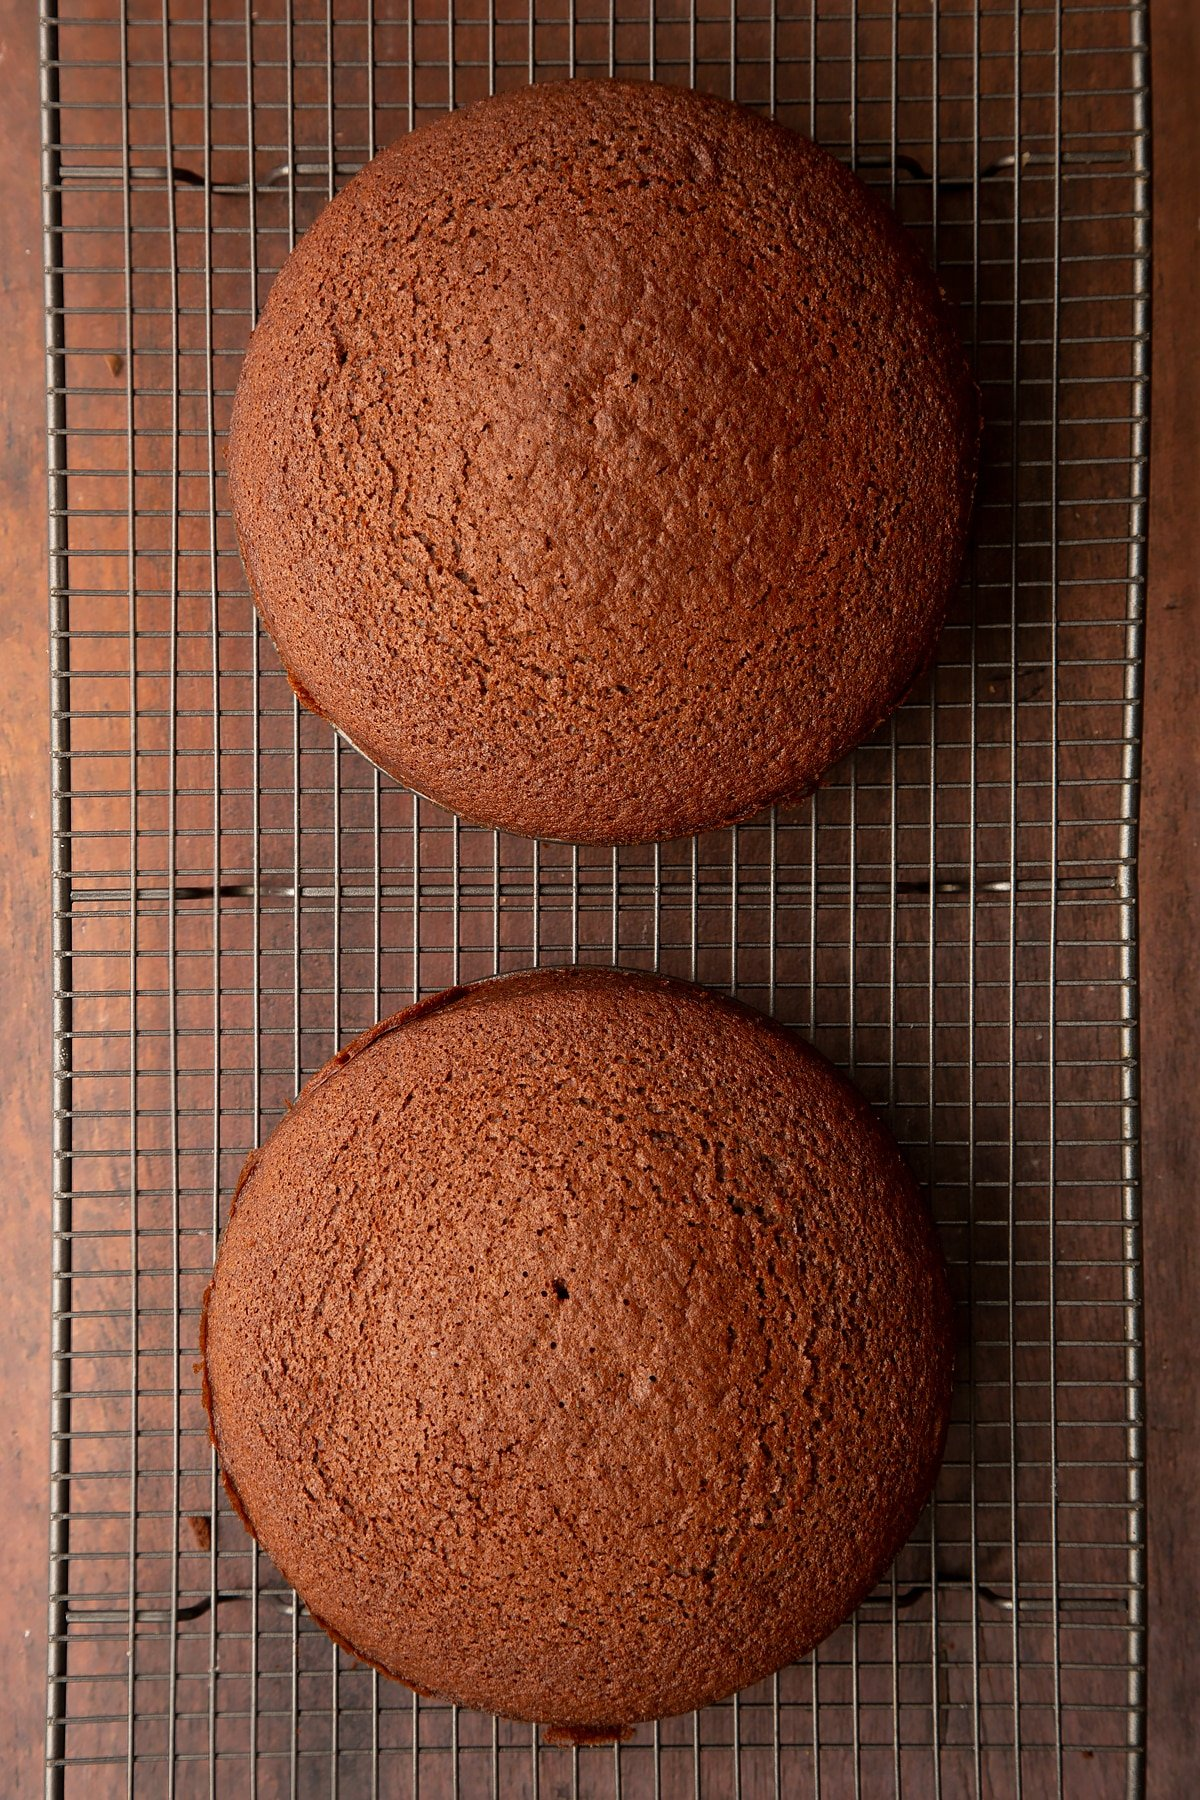 Two chocolate cakes on a wire rack.